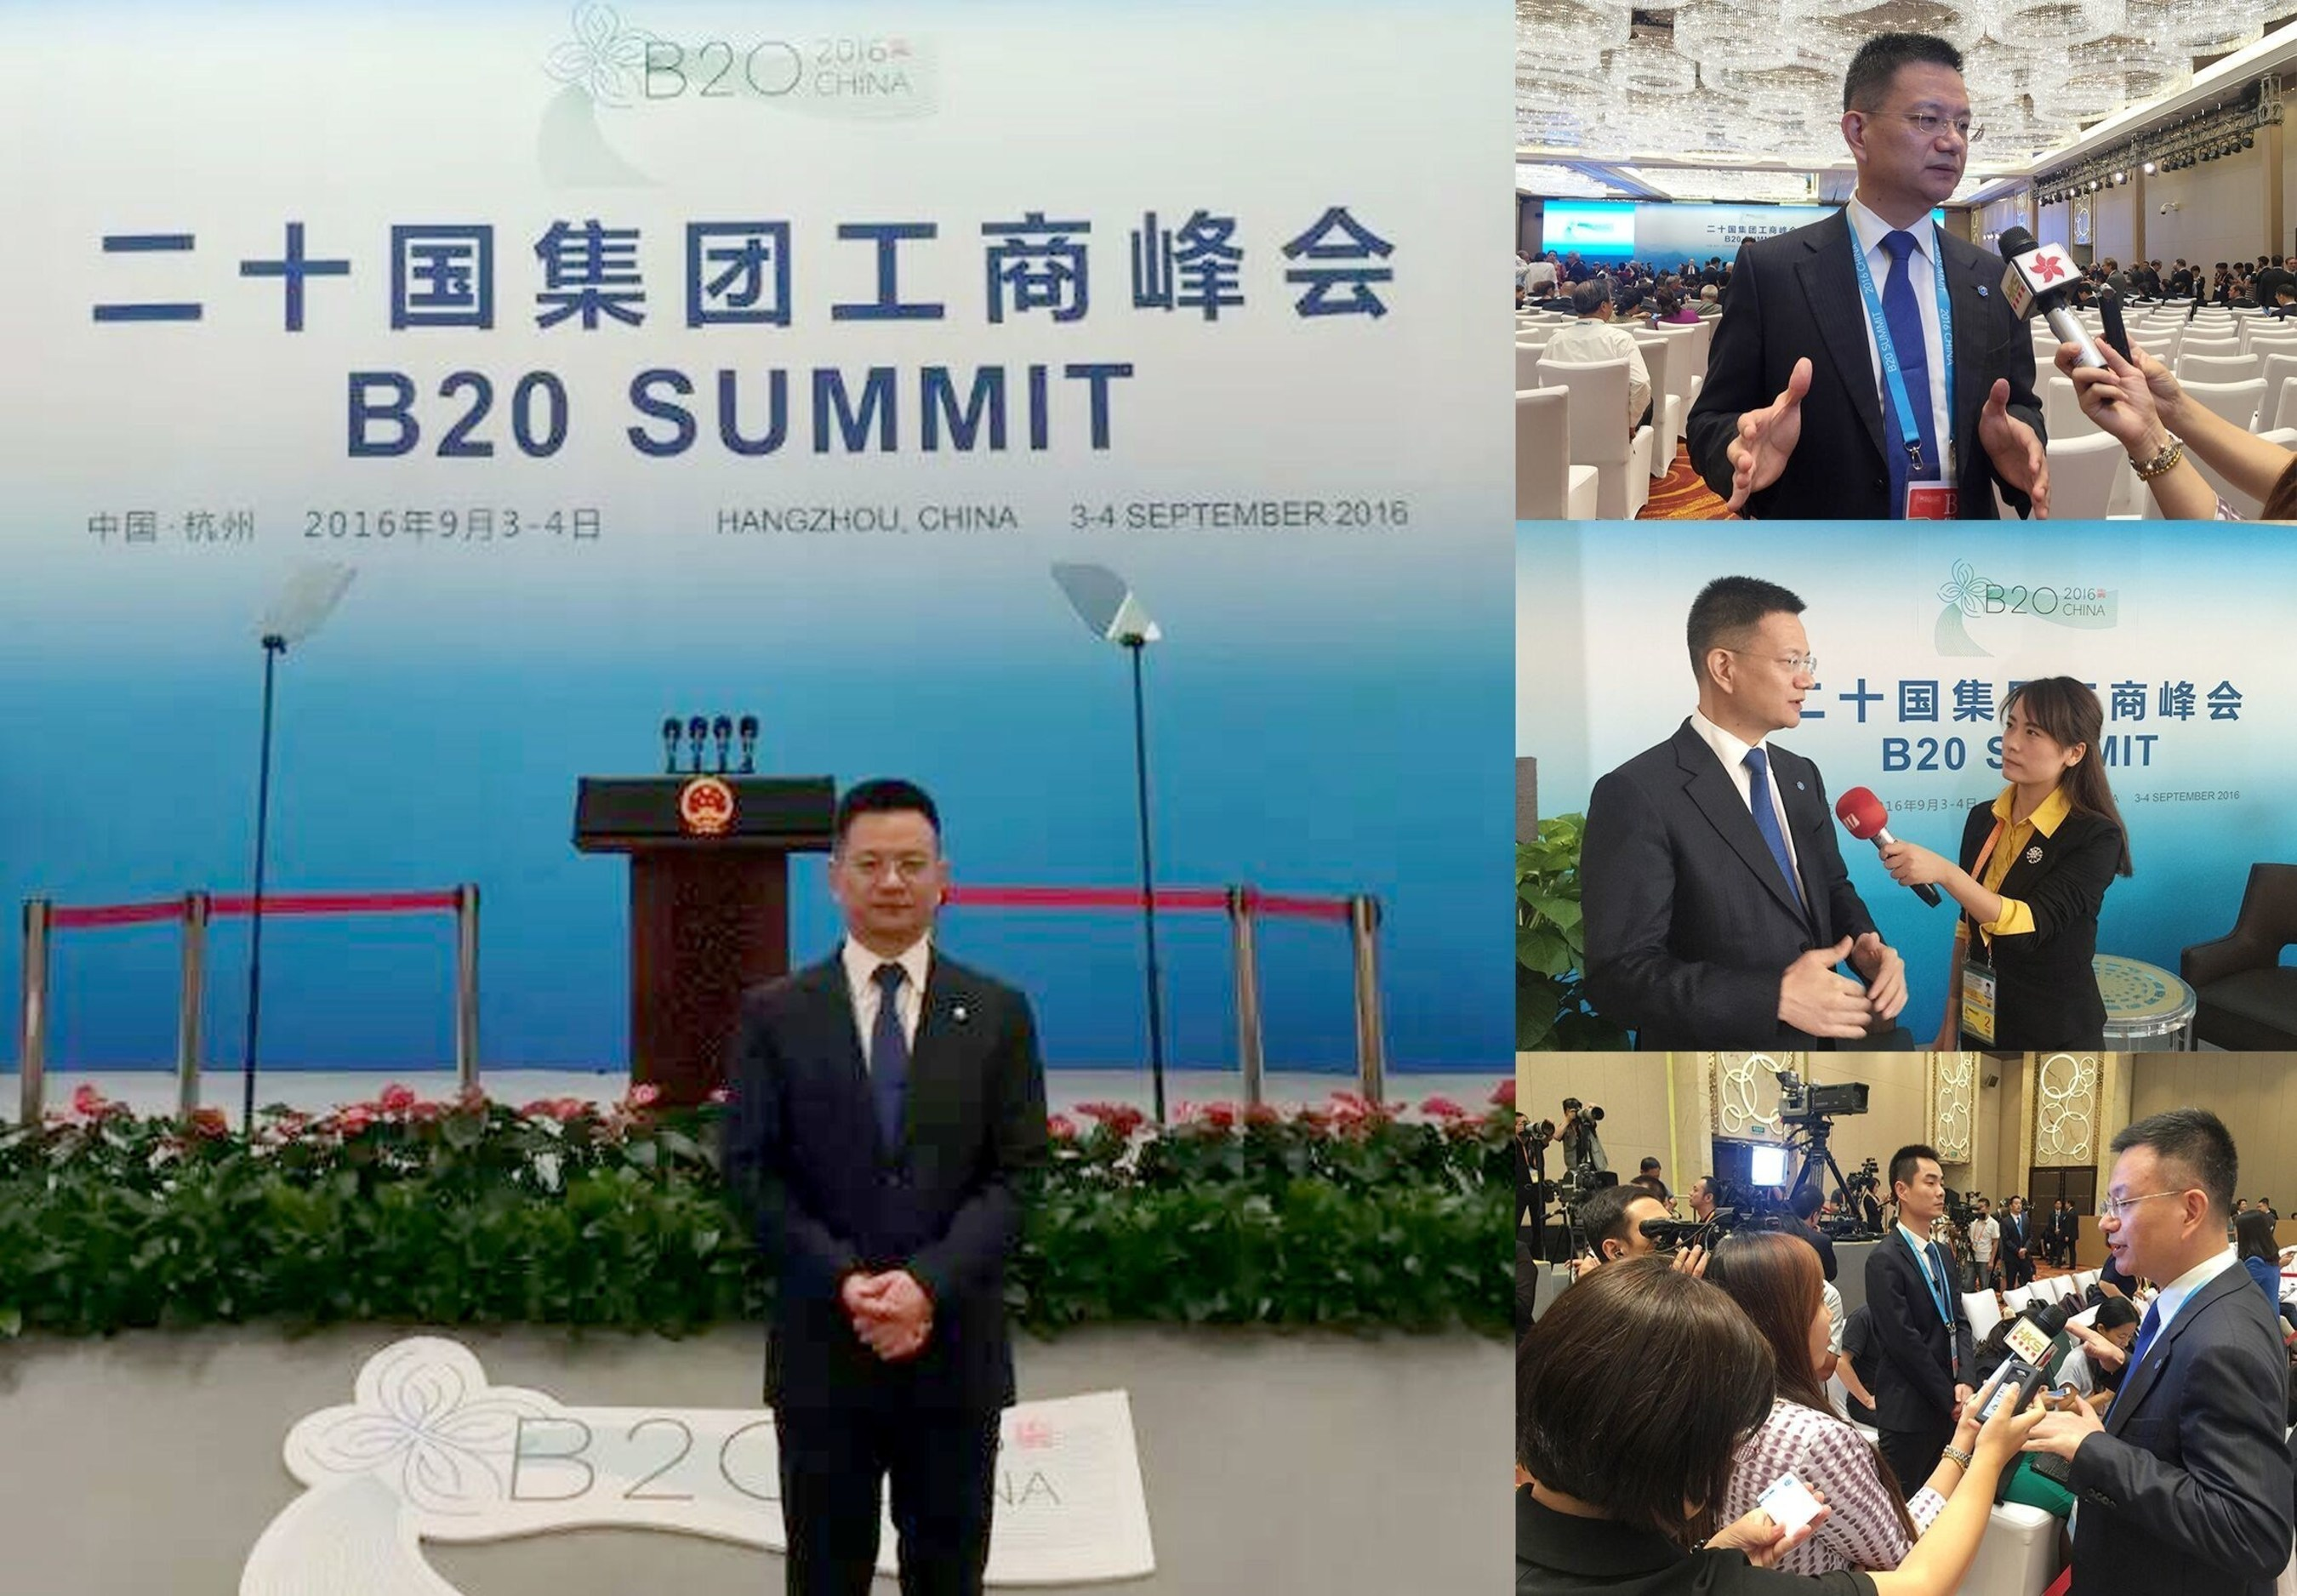 Sparkle of B20 Summit, JUMORE's contribution to G20